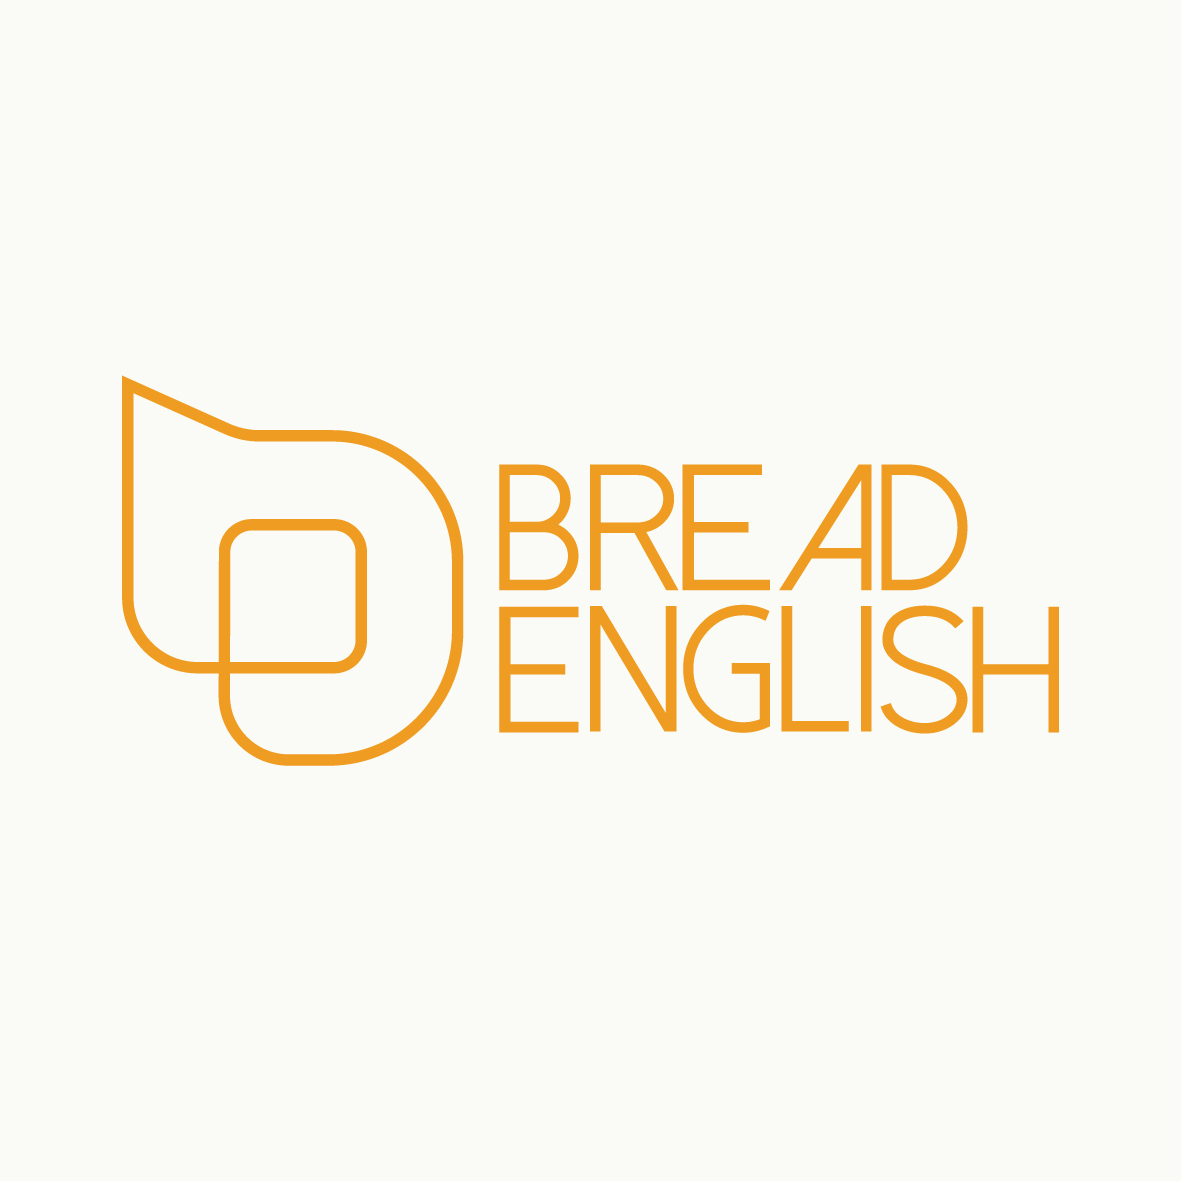 Online Enlish Teachers needed for Kids and Adults